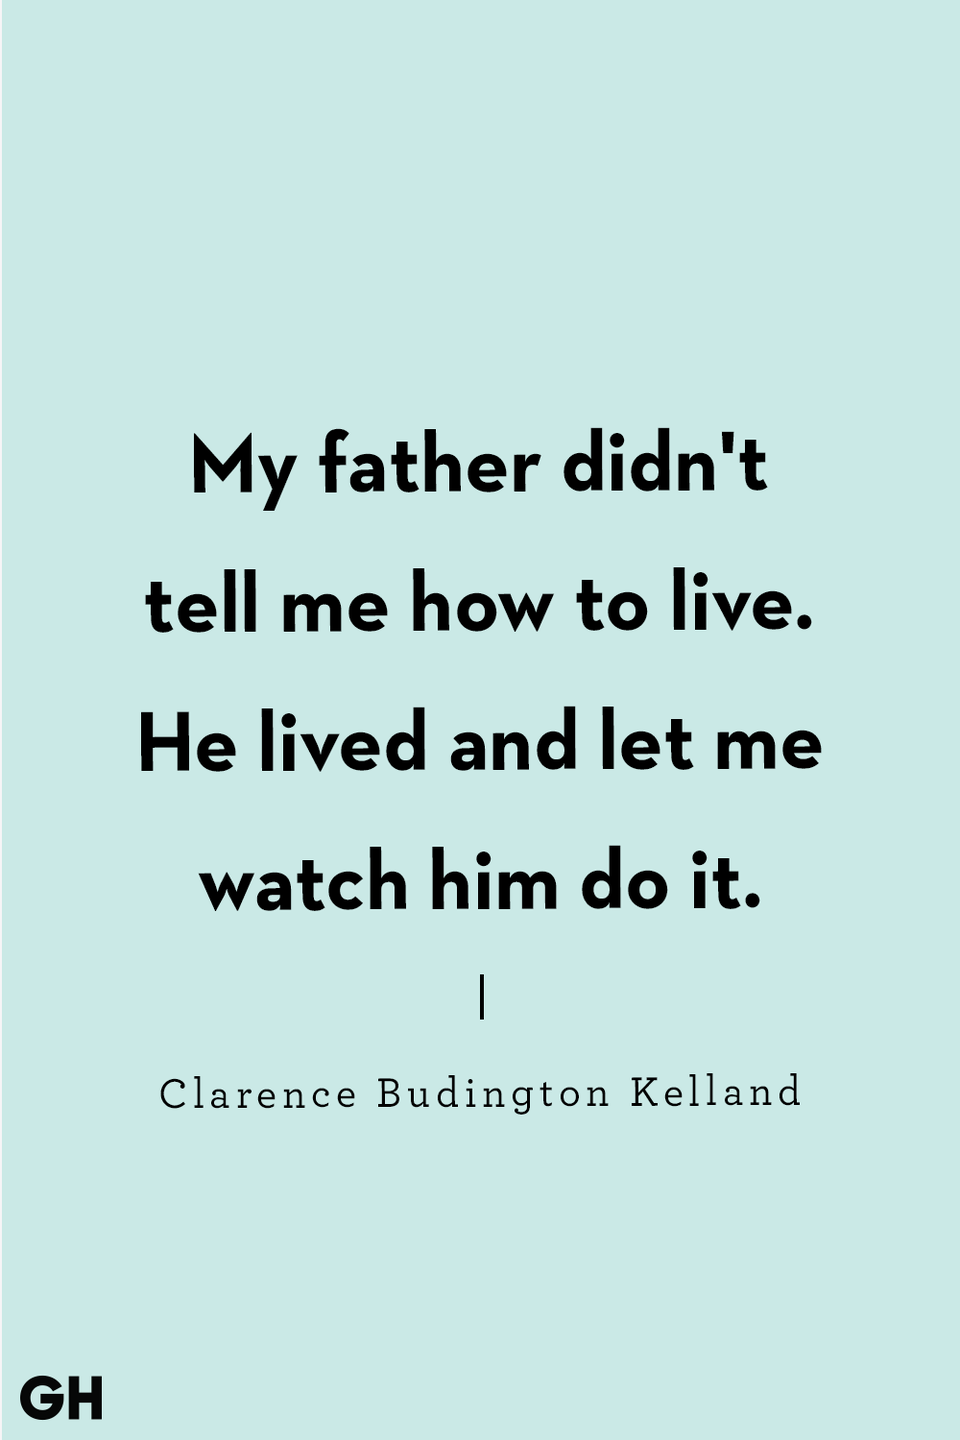 <p>My father didn't tell me how to live. He lived and let me watch him do it.</p>